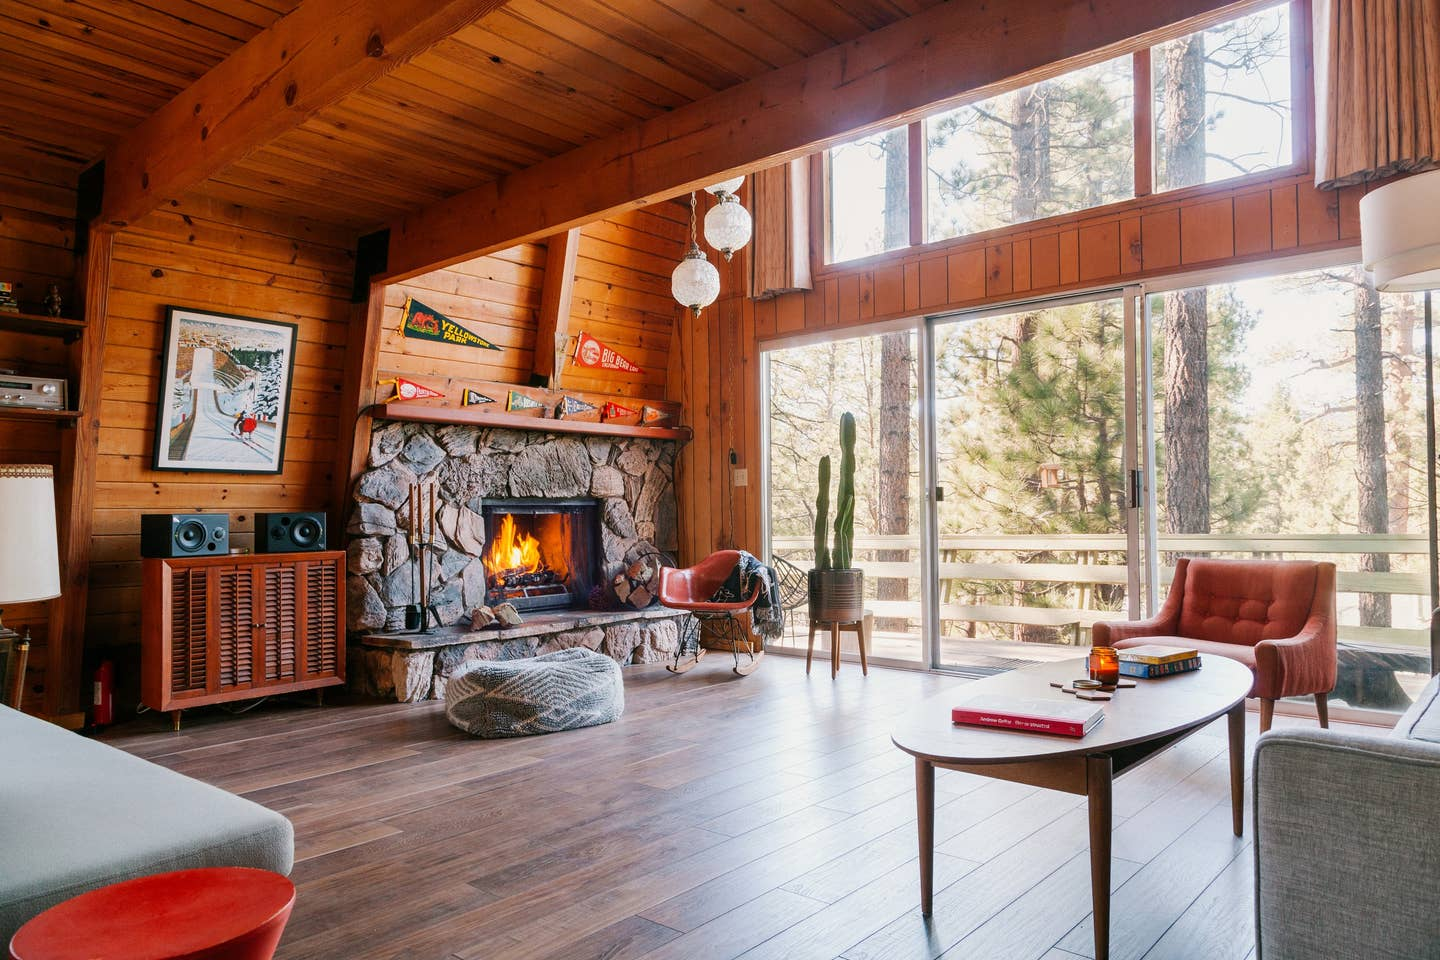 Big Bear Treehouse Airbnb